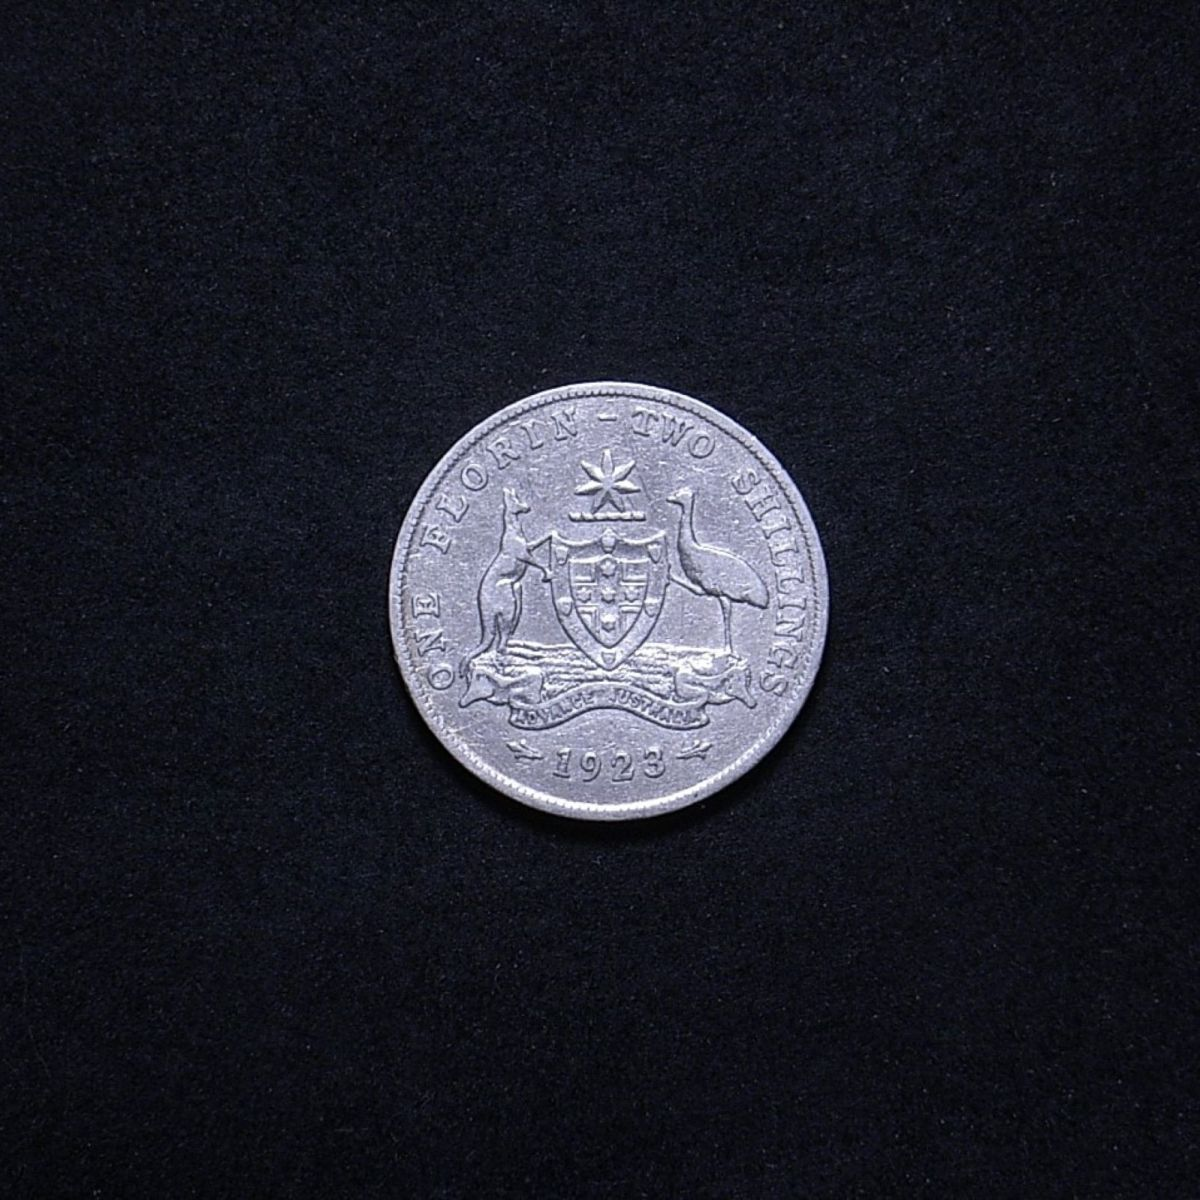 1923 florin reverse showing the coin's overall appearance to be quite worn